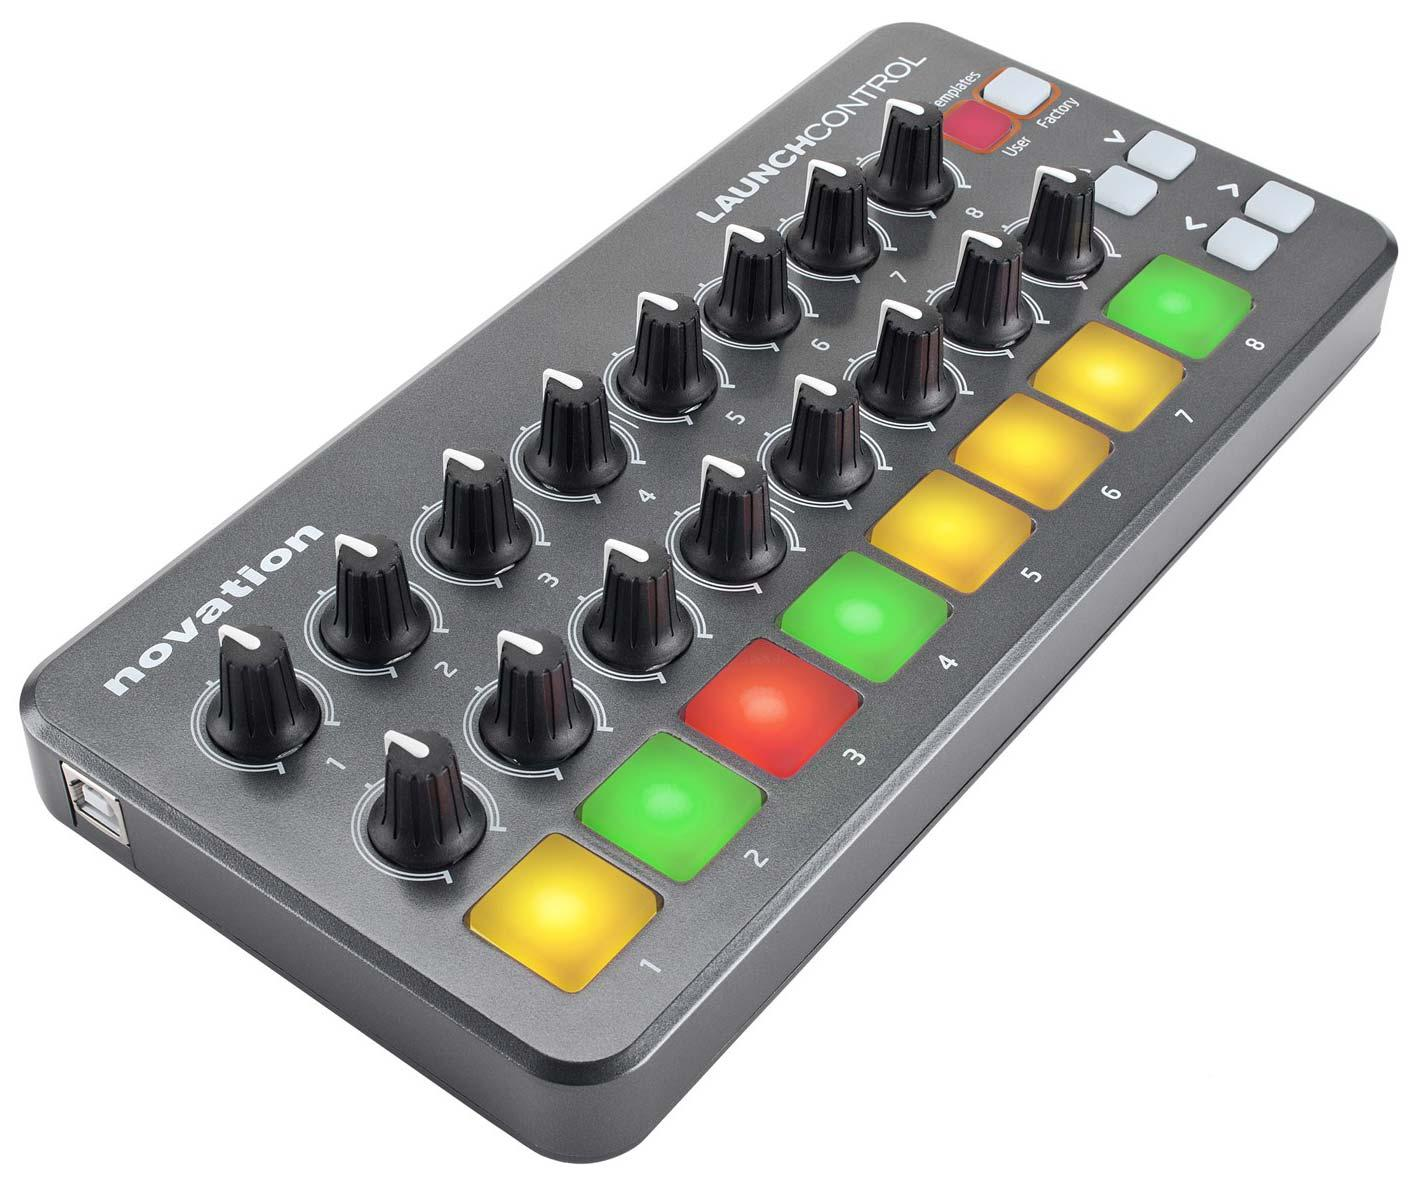 novation launch control portable usb midi controller with 16 assignabl. Black Bedroom Furniture Sets. Home Design Ideas